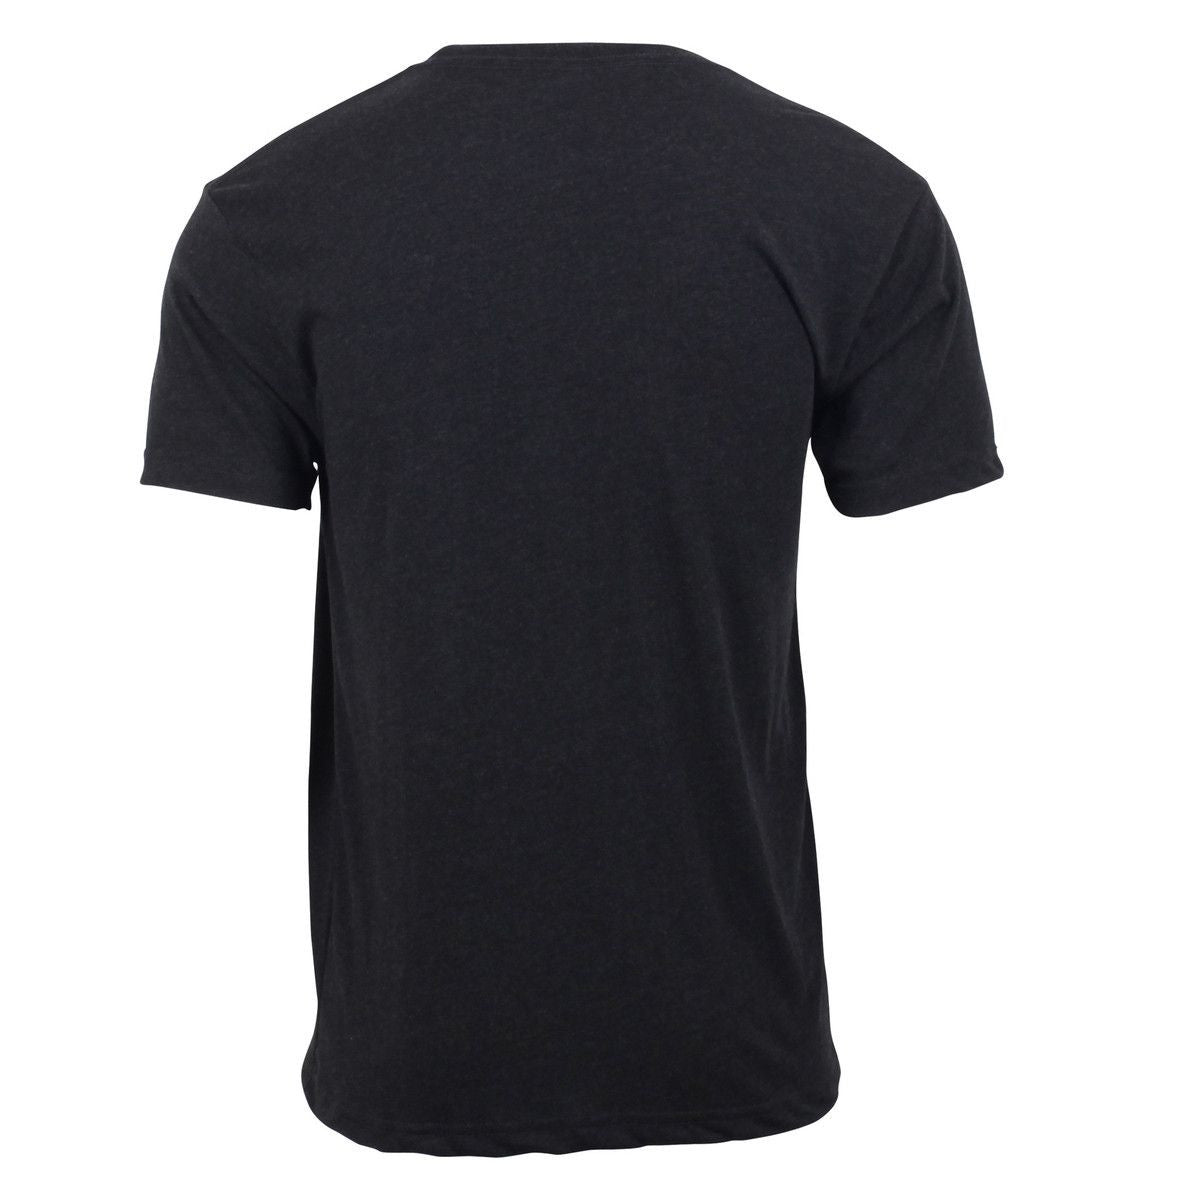 Plain T Shirts. invalid category id. Plain T Shirts. Product - I Love My Smokin Hot Fiance Black Adult Long Sleeve T-Shirt. Product Image. Price $ Product Title. If you need to return or exchange an item you can send it back at no cost or take it to your neighborhood store.